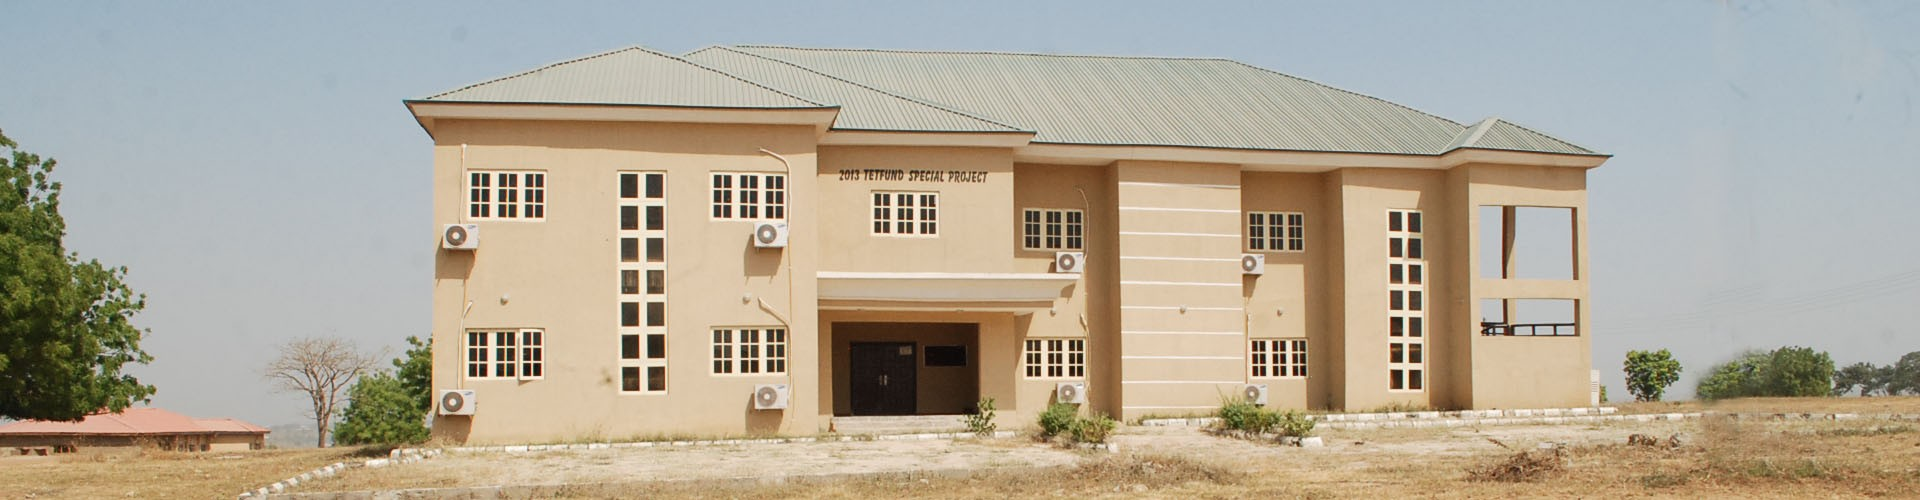 Lecturers' Office block